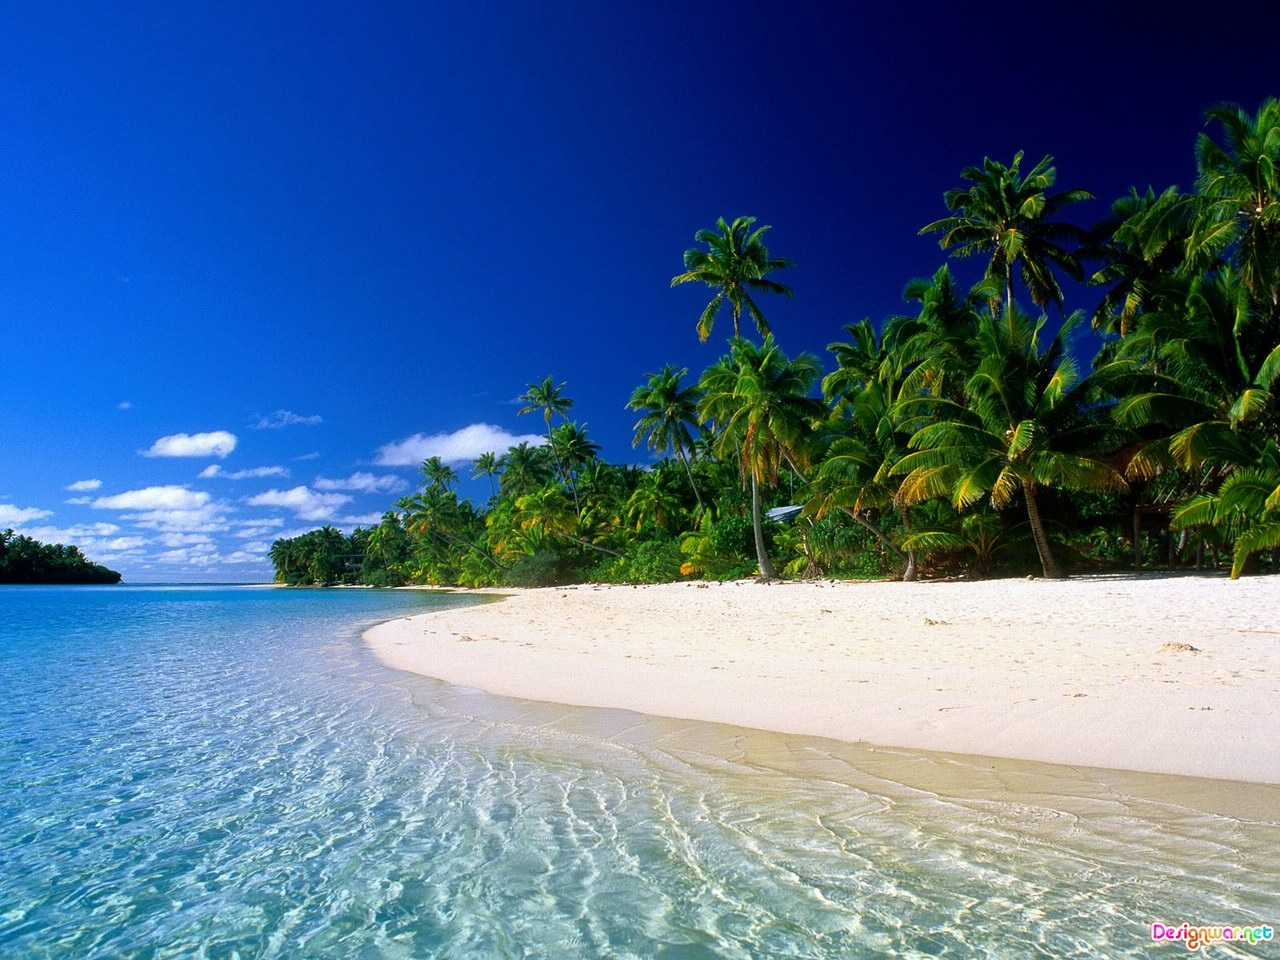 A tropical beach and a